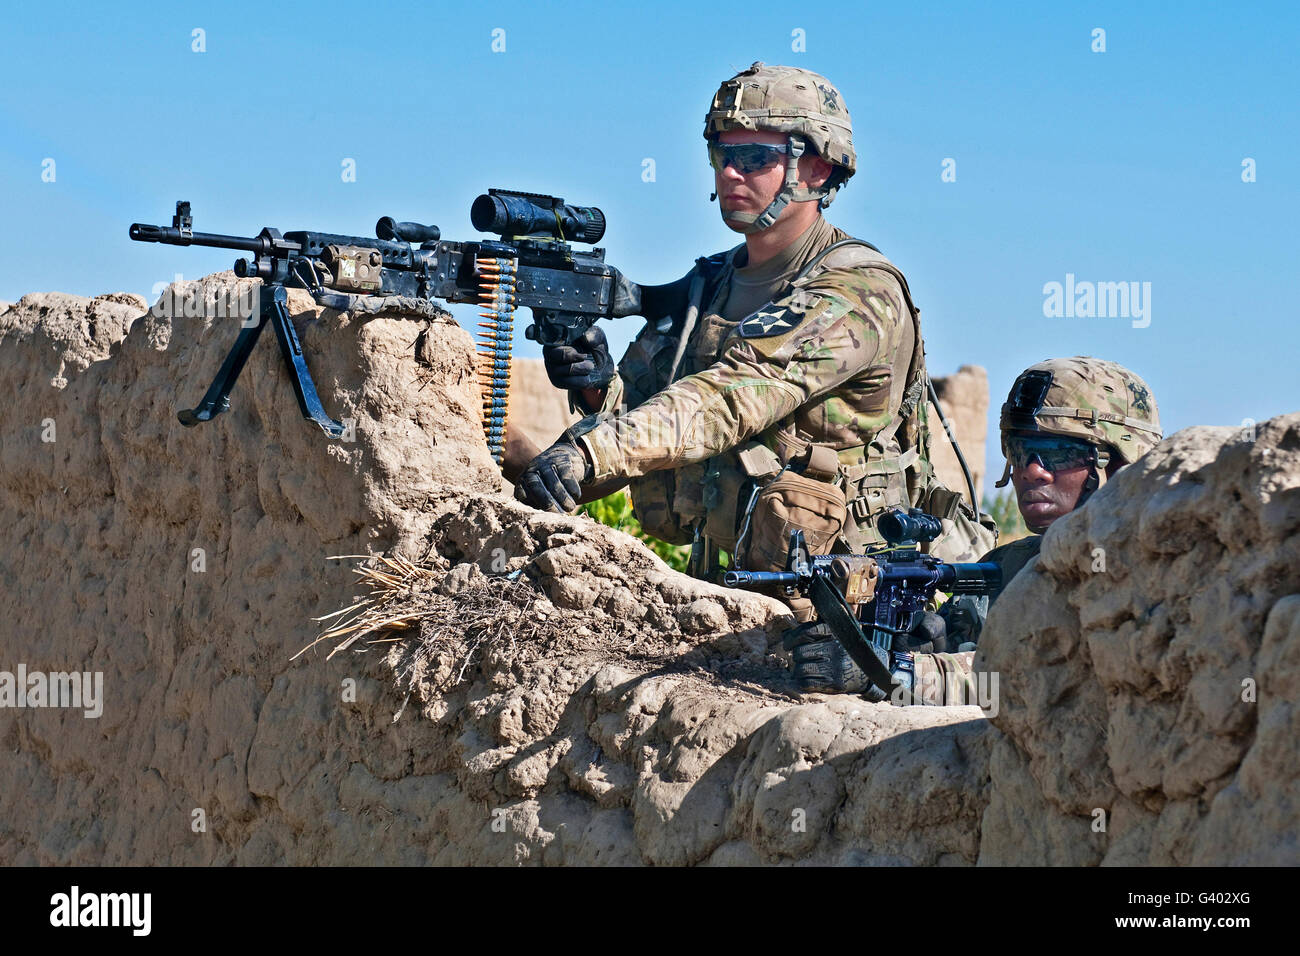 Soldiers scan the horizon in southern Afghanistan. - Stock Image